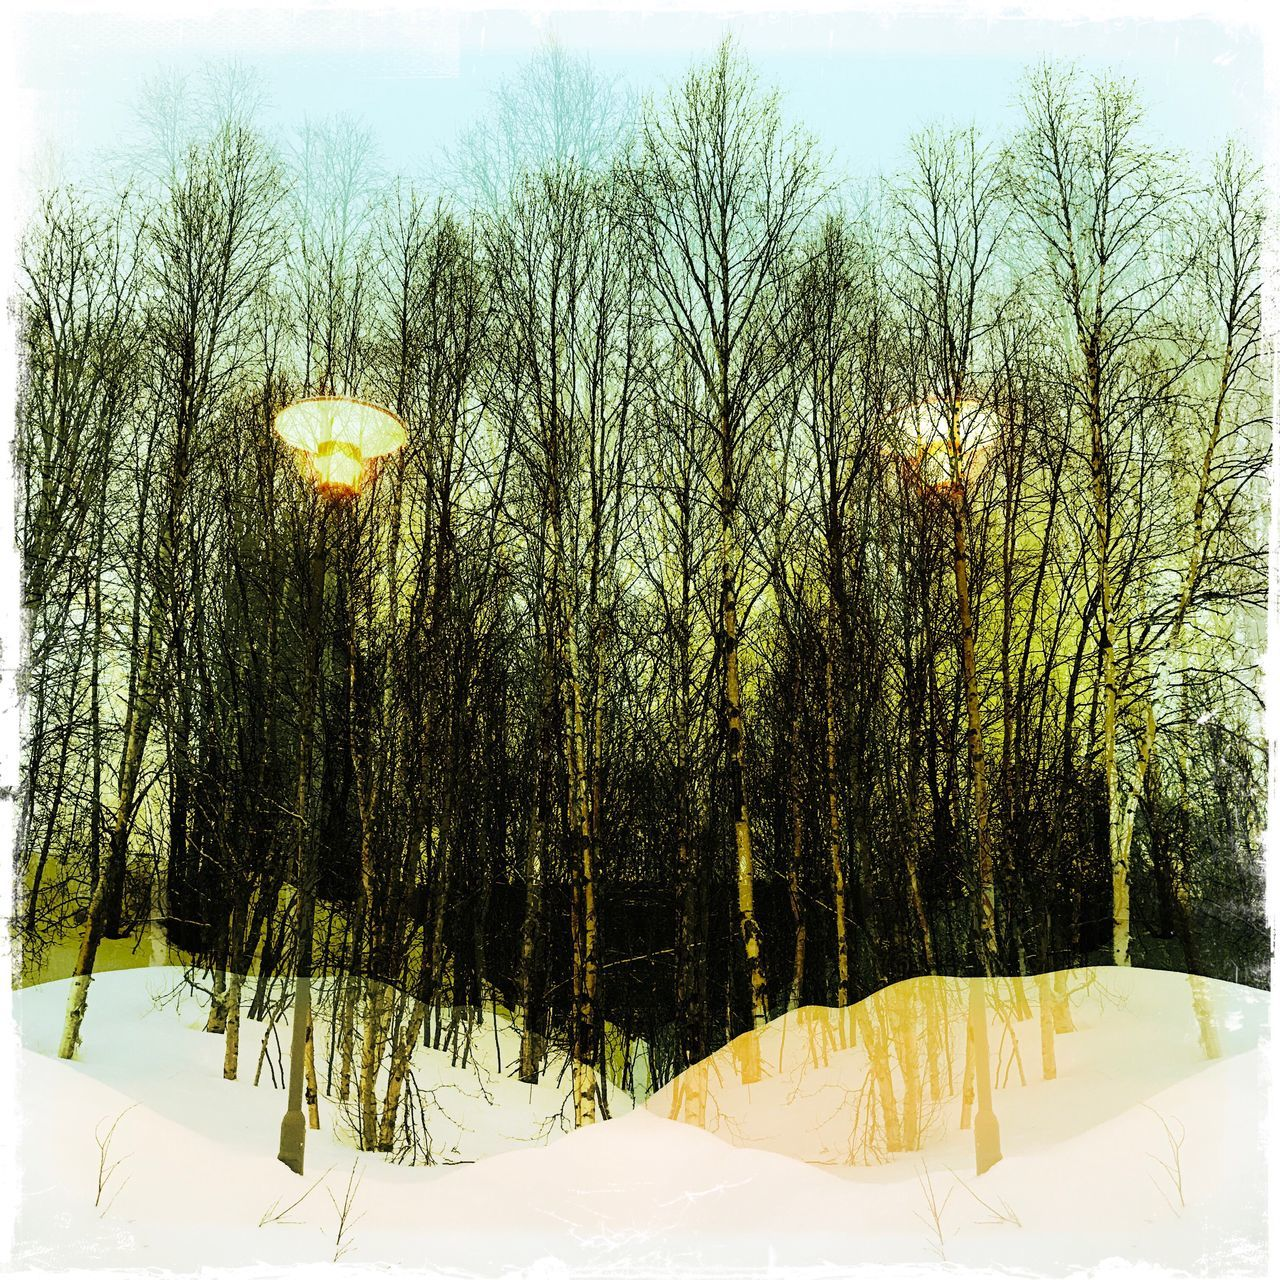 Adapted To The City Snow Winter Tree Cold Temperature Nature Beauty In Nature No People Landscape Growth Bare Tree Narnia  Otherworldly Polar Night Norway Double Exposure Magic Streetlights Birch Tree Light Contrast Border Borderline Parallel Best EyeEm Shot